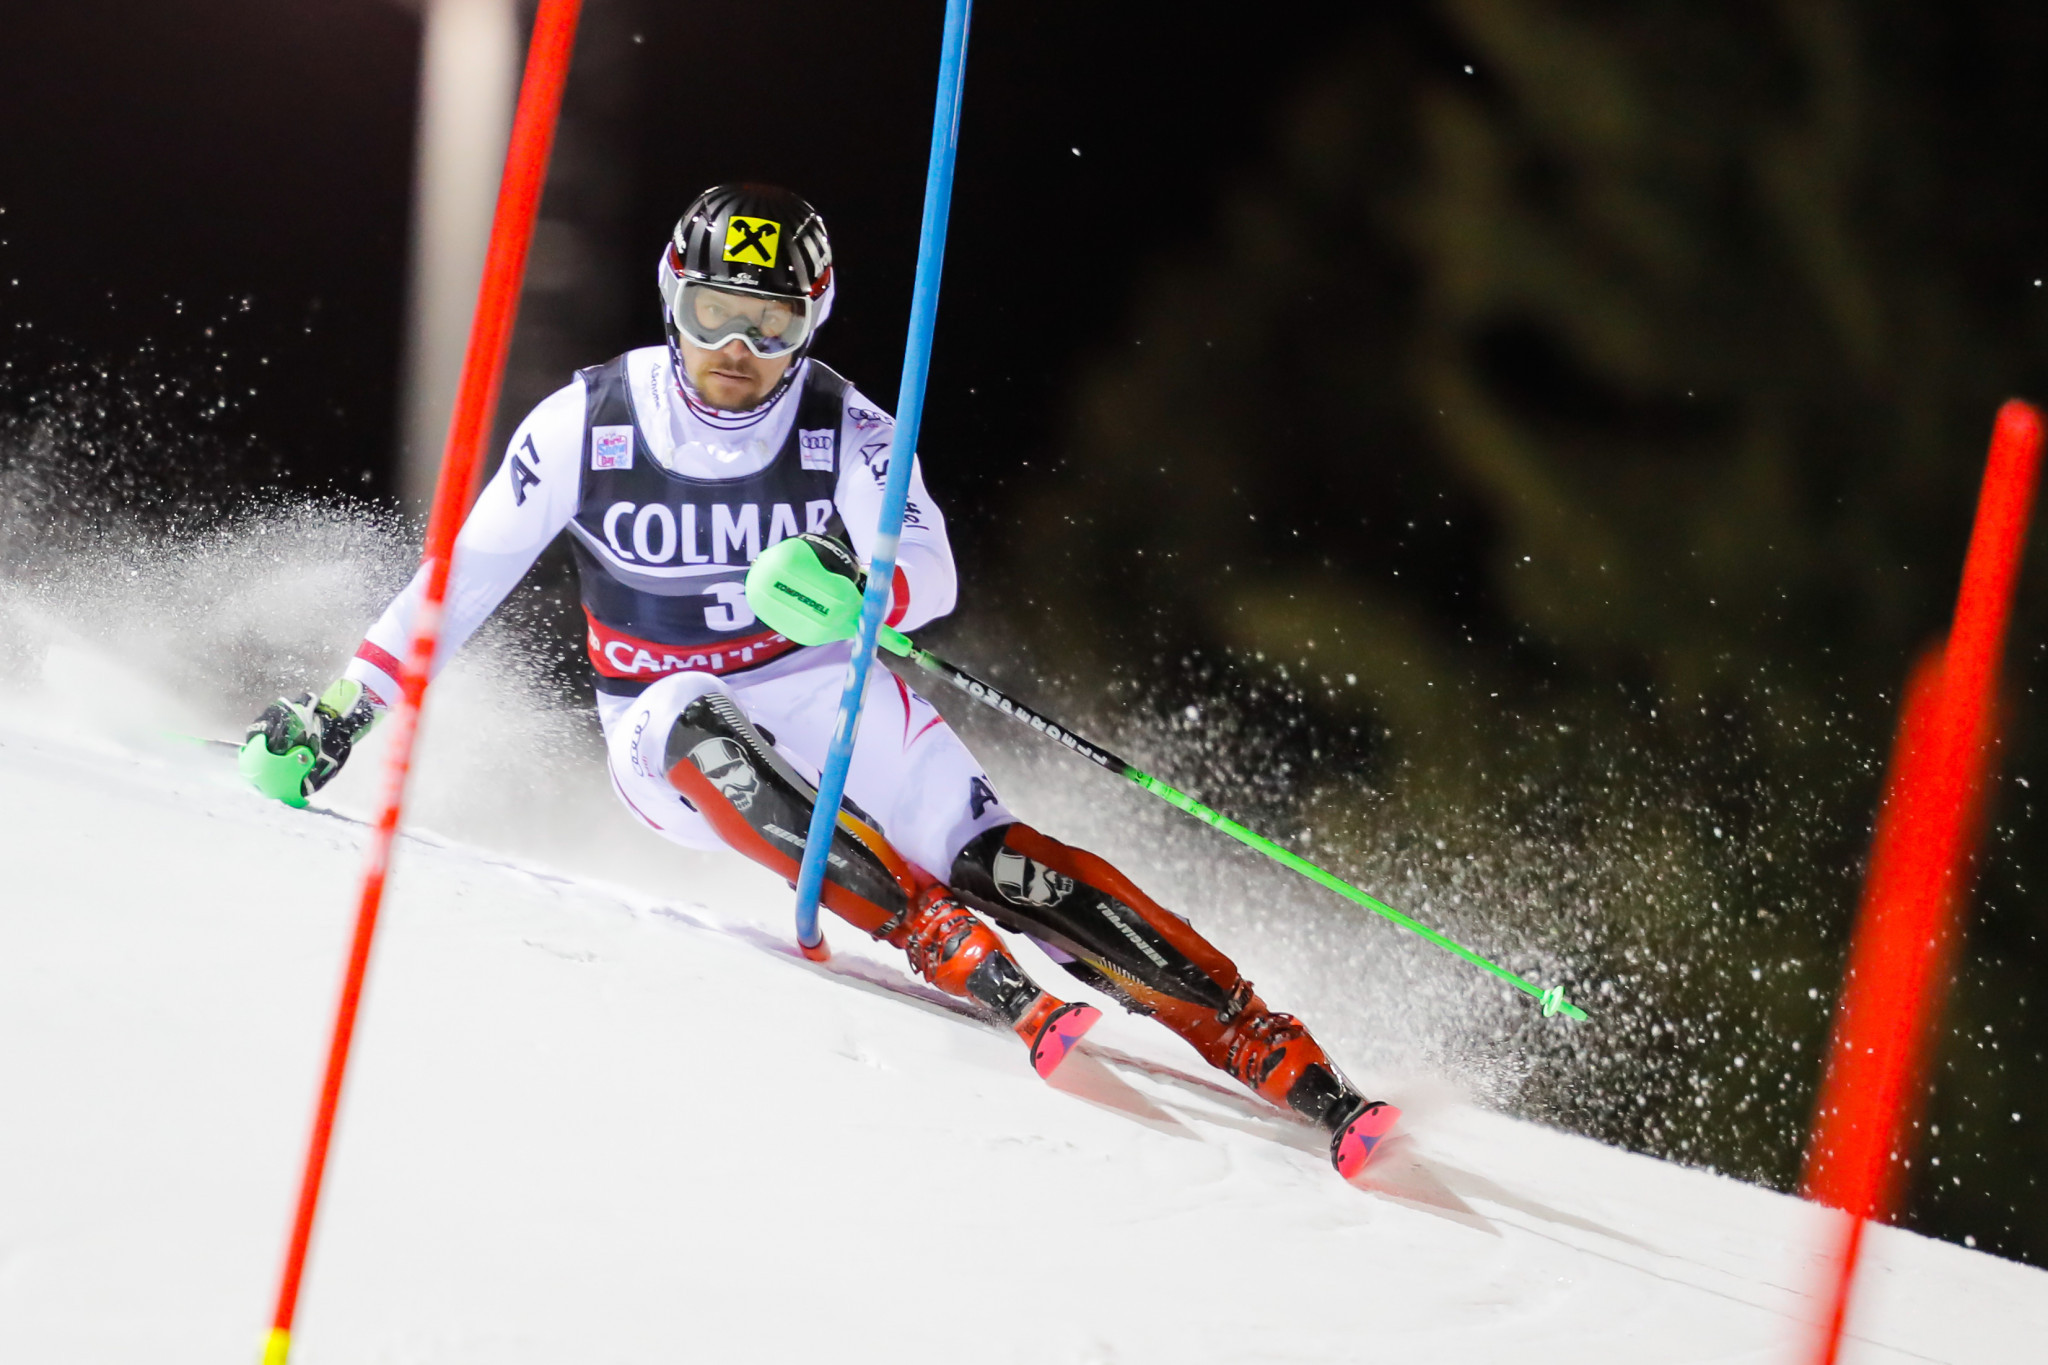 Hirscher maintains commanding start to season with slalom success at Alpine Skiing World Cup